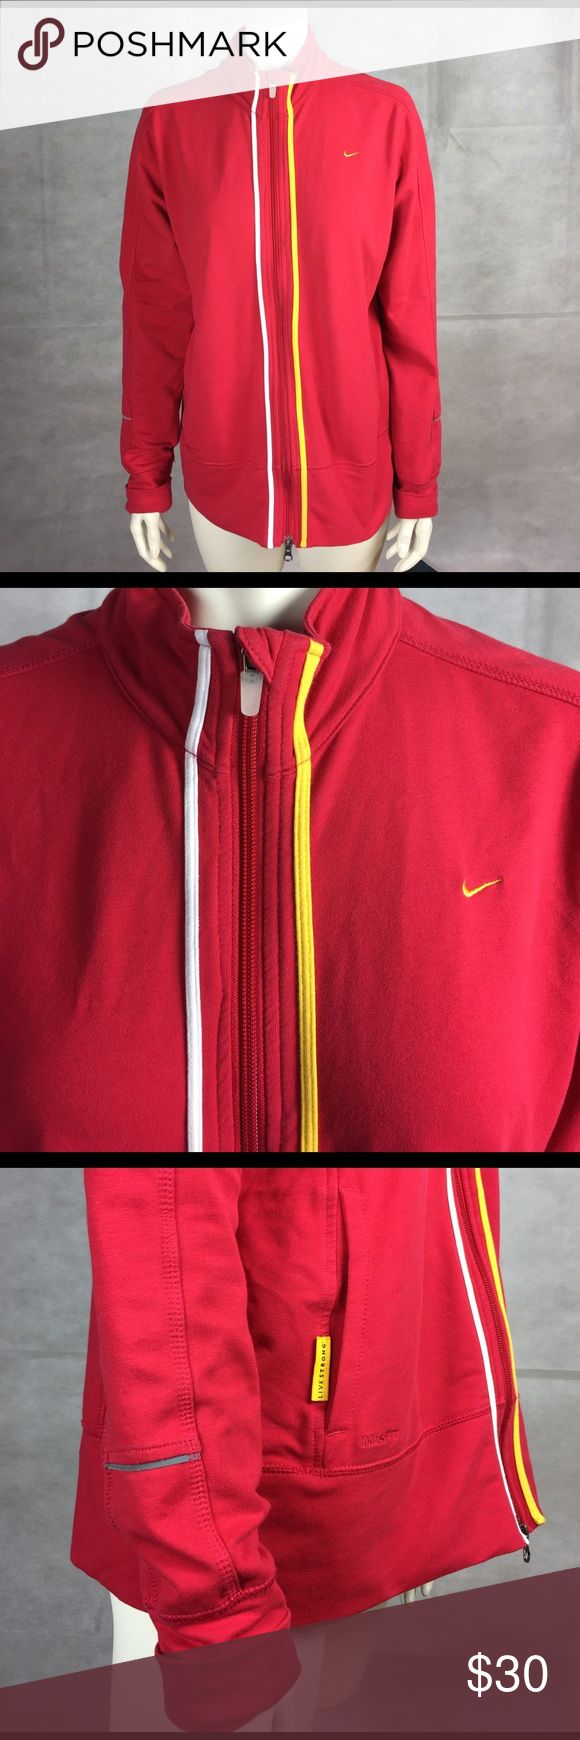 Women's Nike Fit Dry jacket XL (16-18) red/yellow This is an authentic women's  Nike jacket size XL (16-18). It is flawless, no rips, tears, or stains. Zipper works. It is a bright red with a yellow Nike check on the chest, as well as two yellow lines that go down the front on opposite sides of the zipper. It is made of 60% cotton, 34% polyester and 6% spandex. Originally 89$ this is a great deal. Nike Jackets & Coats